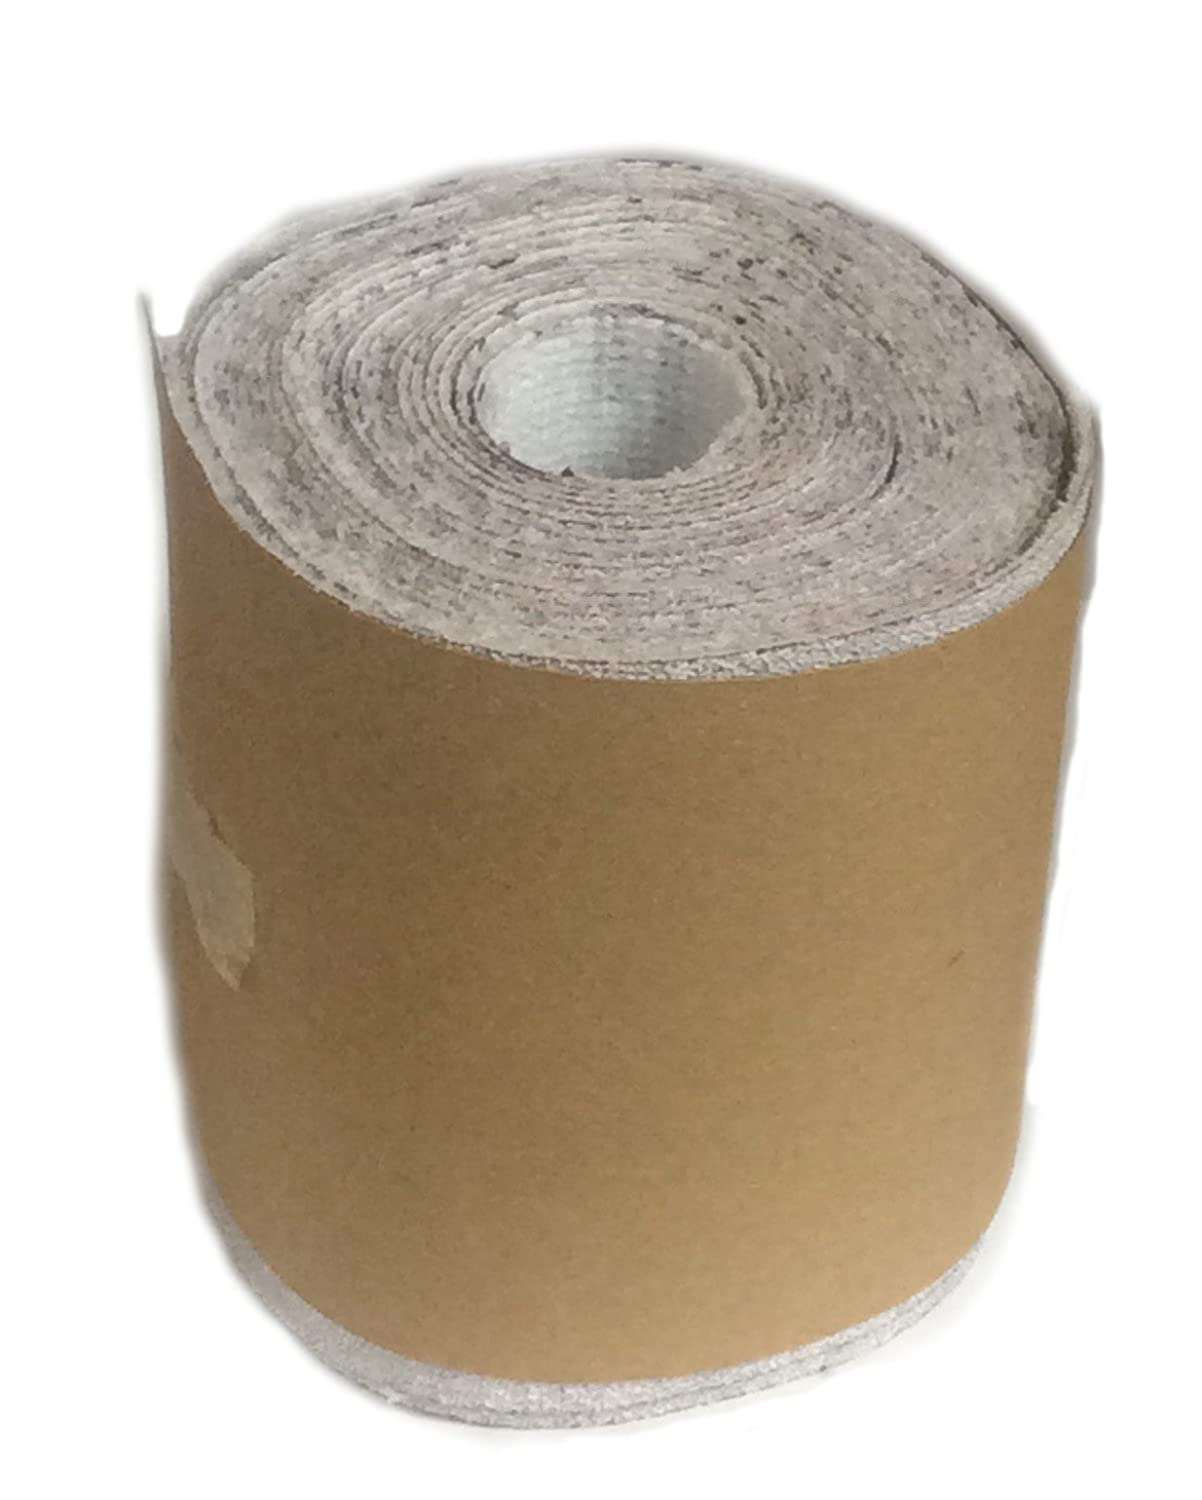 Sungold Abrasives 66843 Hook /& Loop Sanding Rolls for Karebac Line Profile Sanders 80 Grit Premium Plus Paper Stearated Aluminum Oxide 3-7//8 x 5 yd